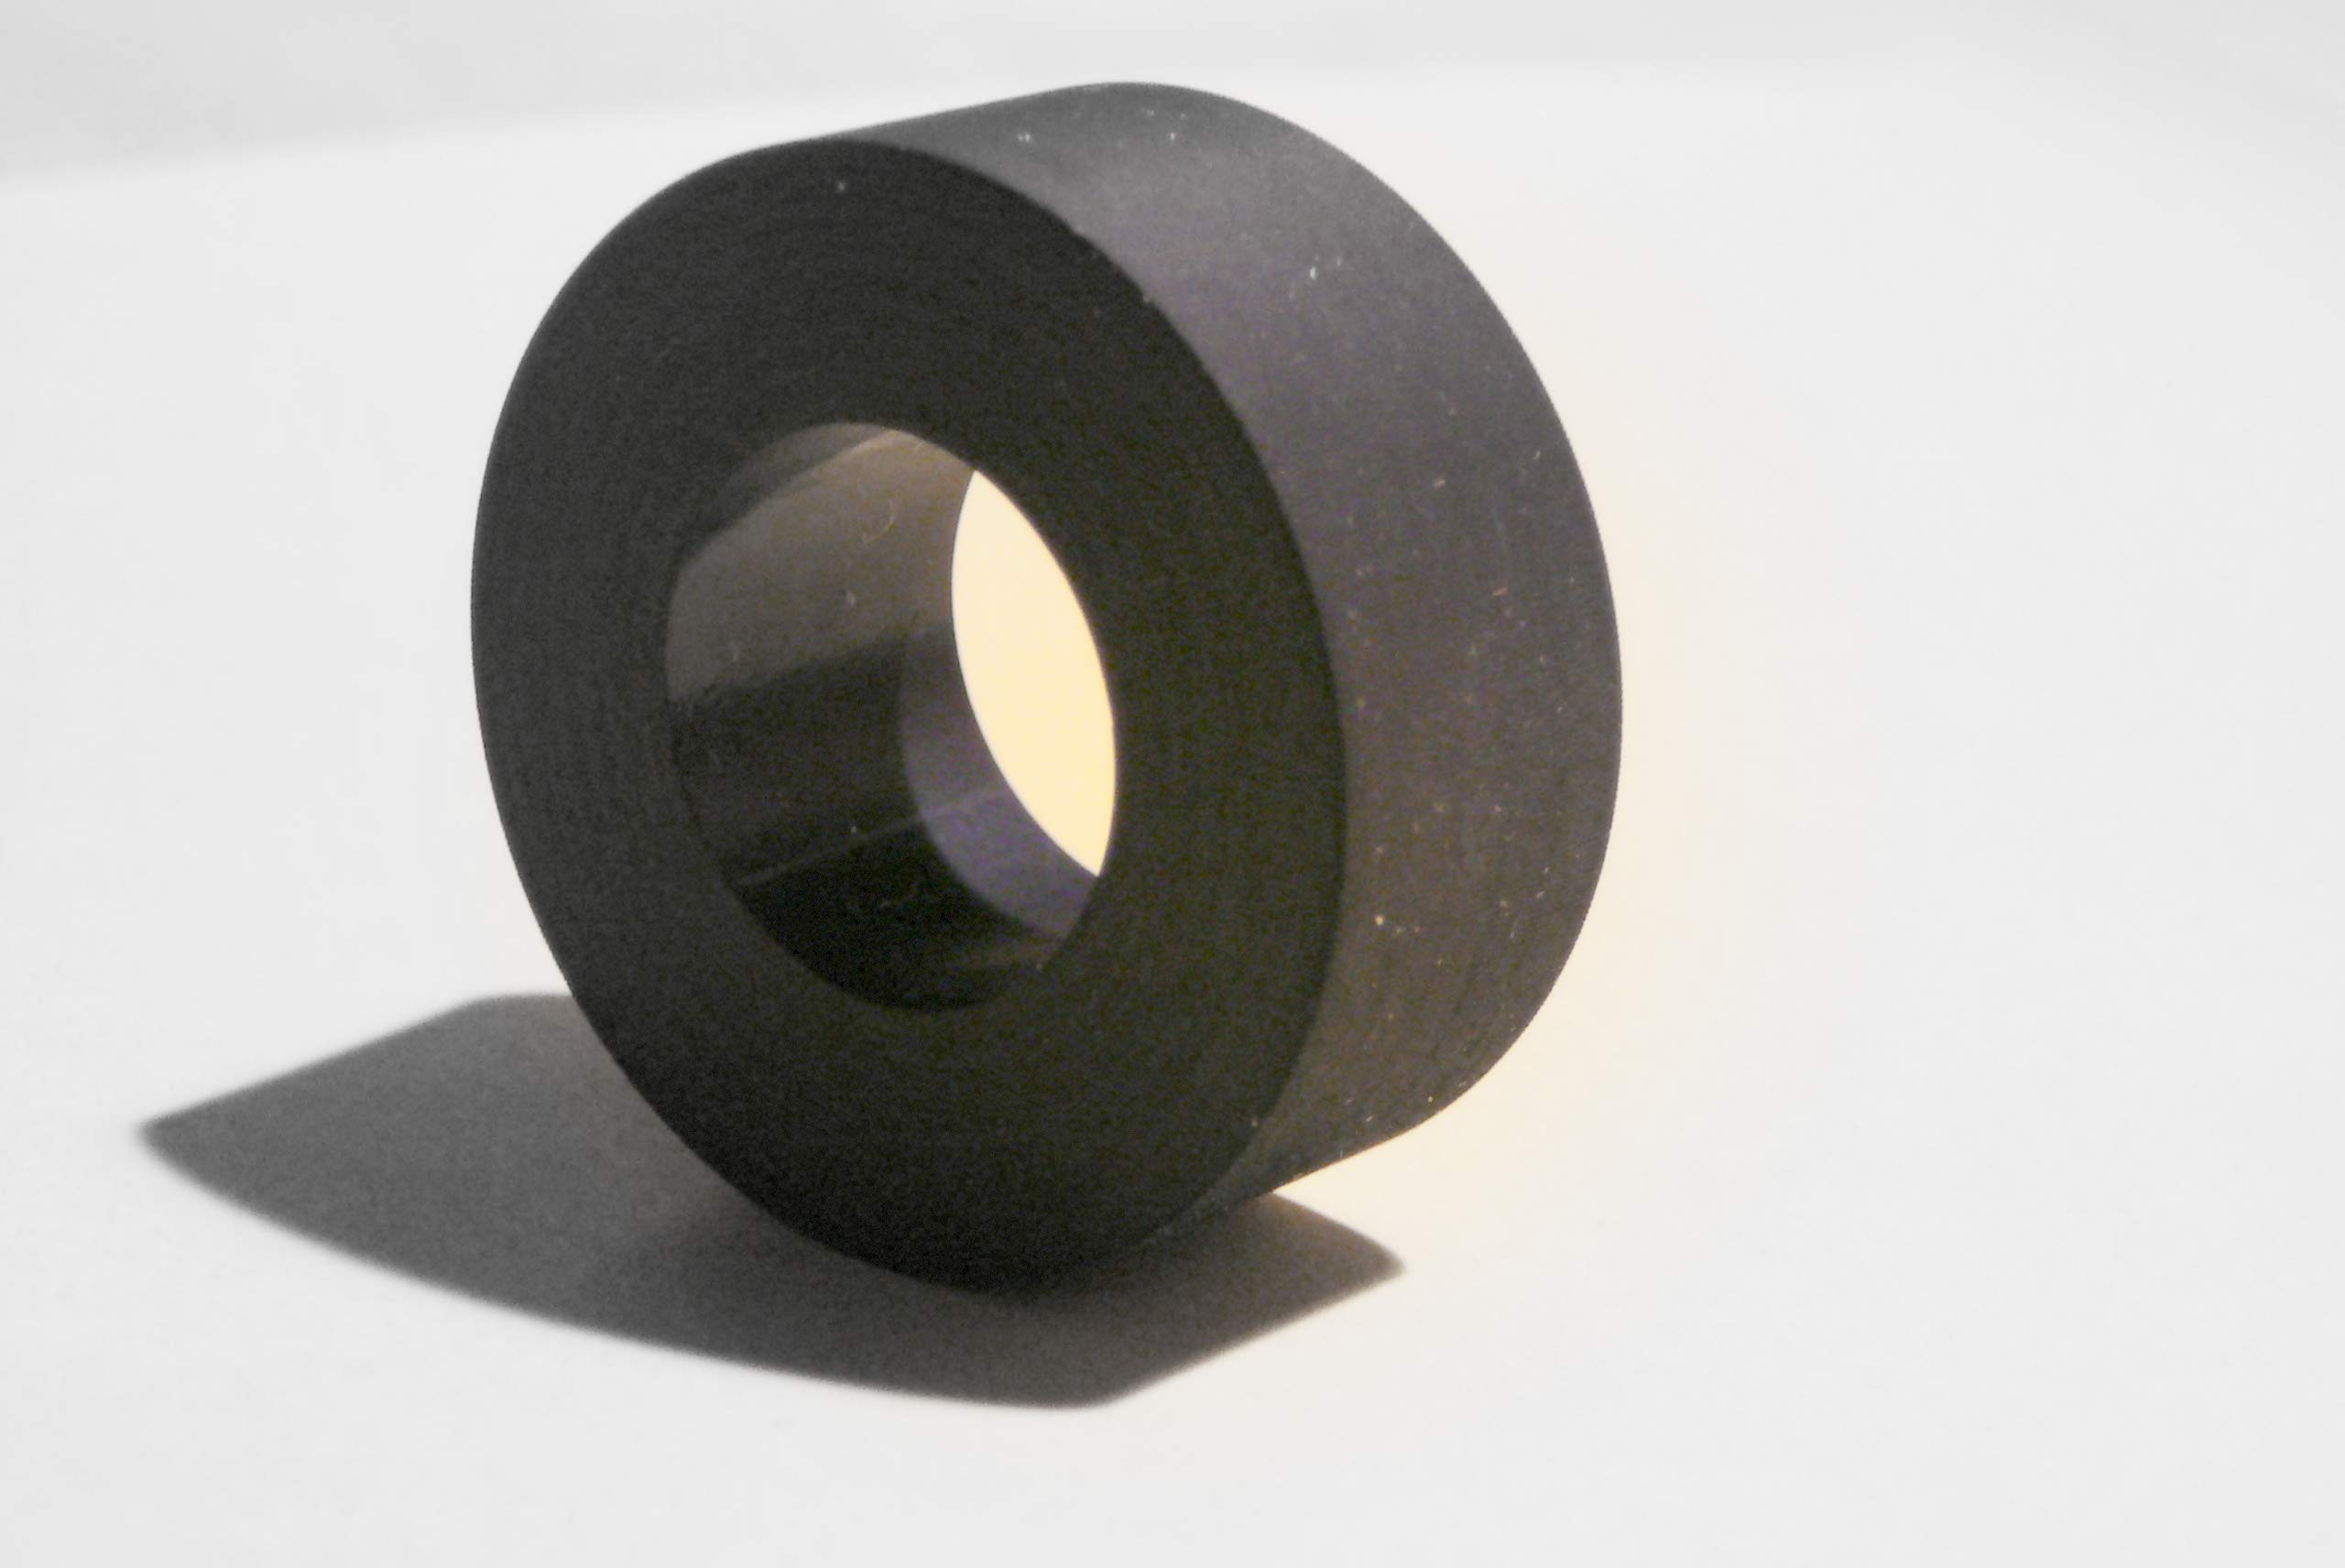 Pinch Roller Replacement Tire for Teac Models A-1230, A-1250, A-1400, A-2100